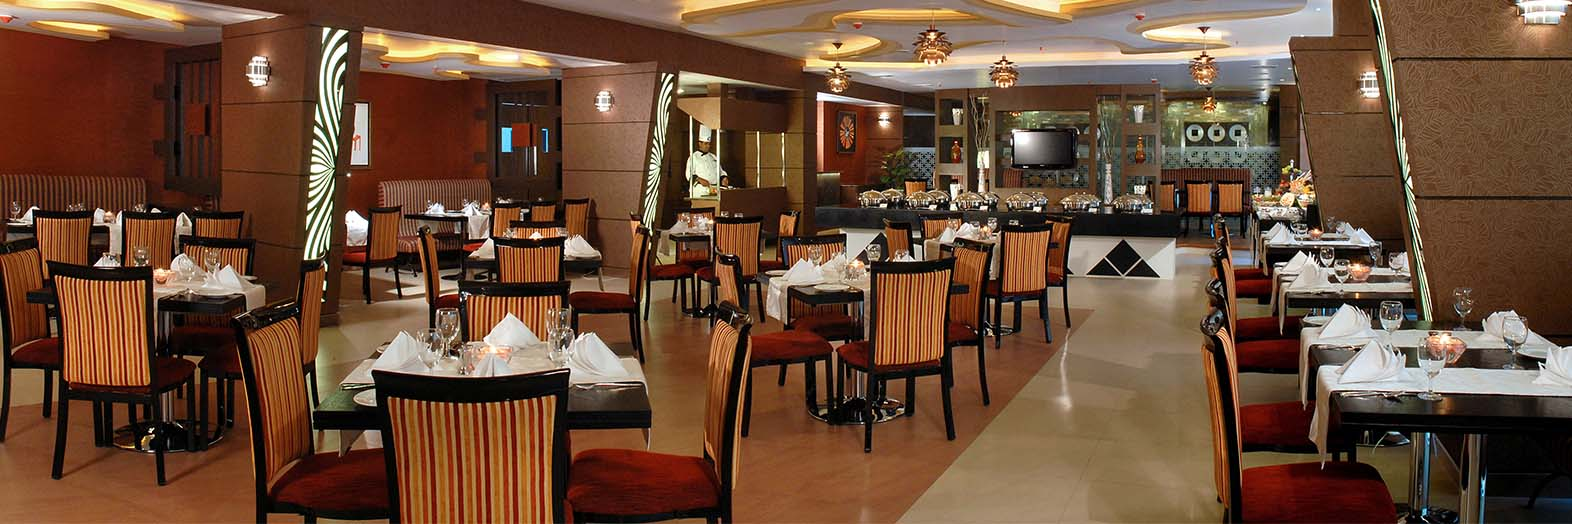 Fortune Park Vallabha–Hotels in Hyderabad  Dining